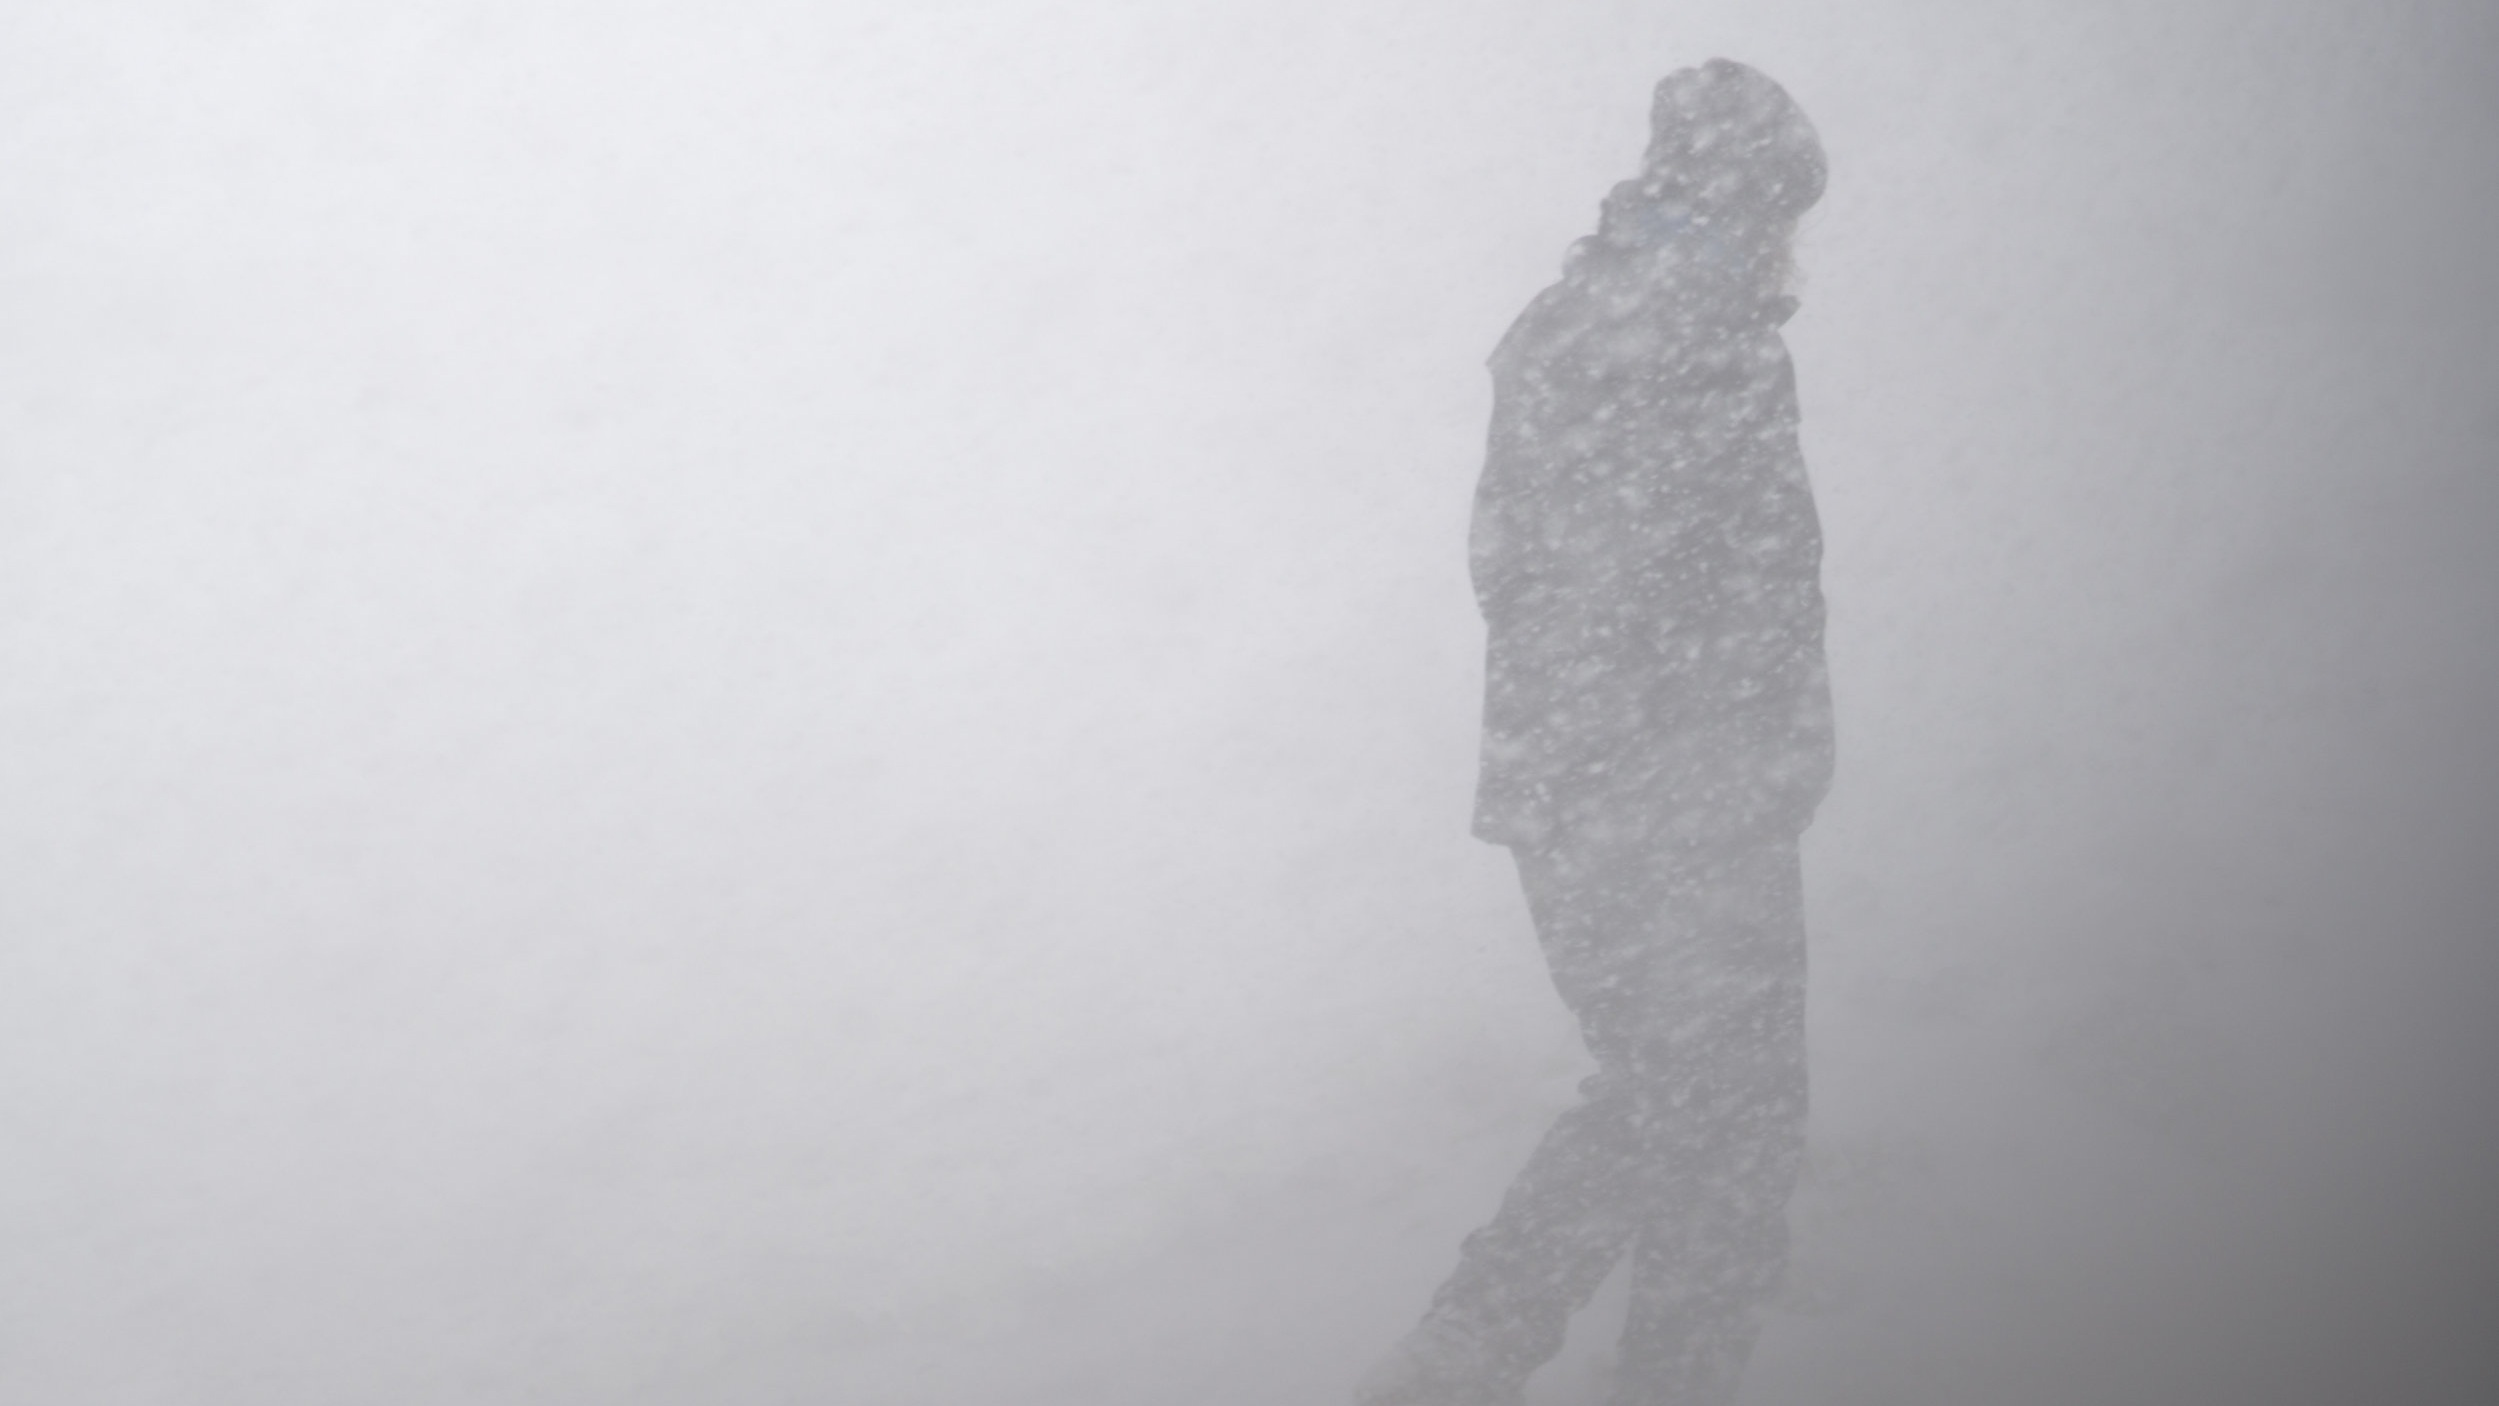 Ice, Snow, and Extreme Cold -